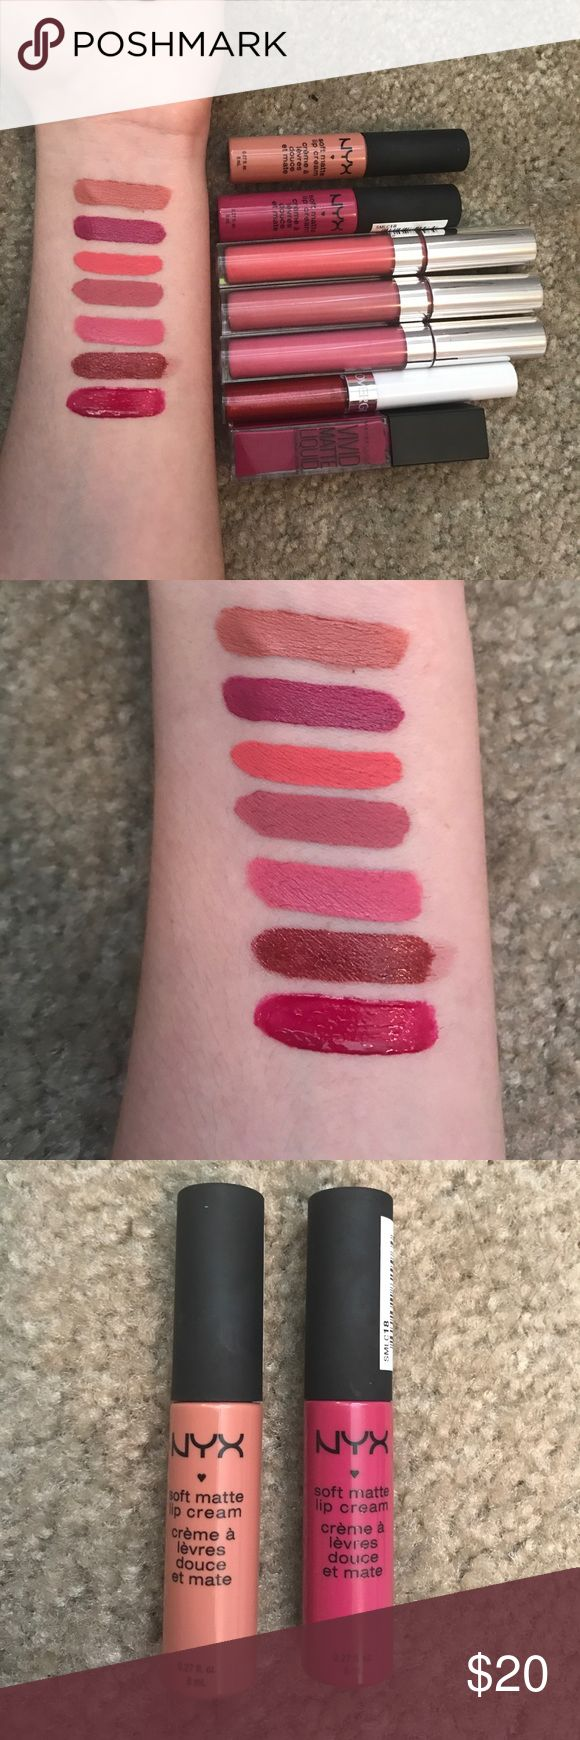 Lipstick bundle!! First two swatches: NYX soft matte lip cream in Stockholm & Prague, next three: Colourpop Ultra Matte lipstick in Donut, Solow, and 1st Base, next: Covergirl lipstick stain in a red shade & comes with a clear top coat, last: Maybelline Vivid Matte Liquid in Berry Boost (this one says matte but doesn't dry as matte, as can tell from the swatch. All swatches in order as previously named. Willing to sell separately, just comment! All never worn, only swatched!! Kylie Cosmetics…